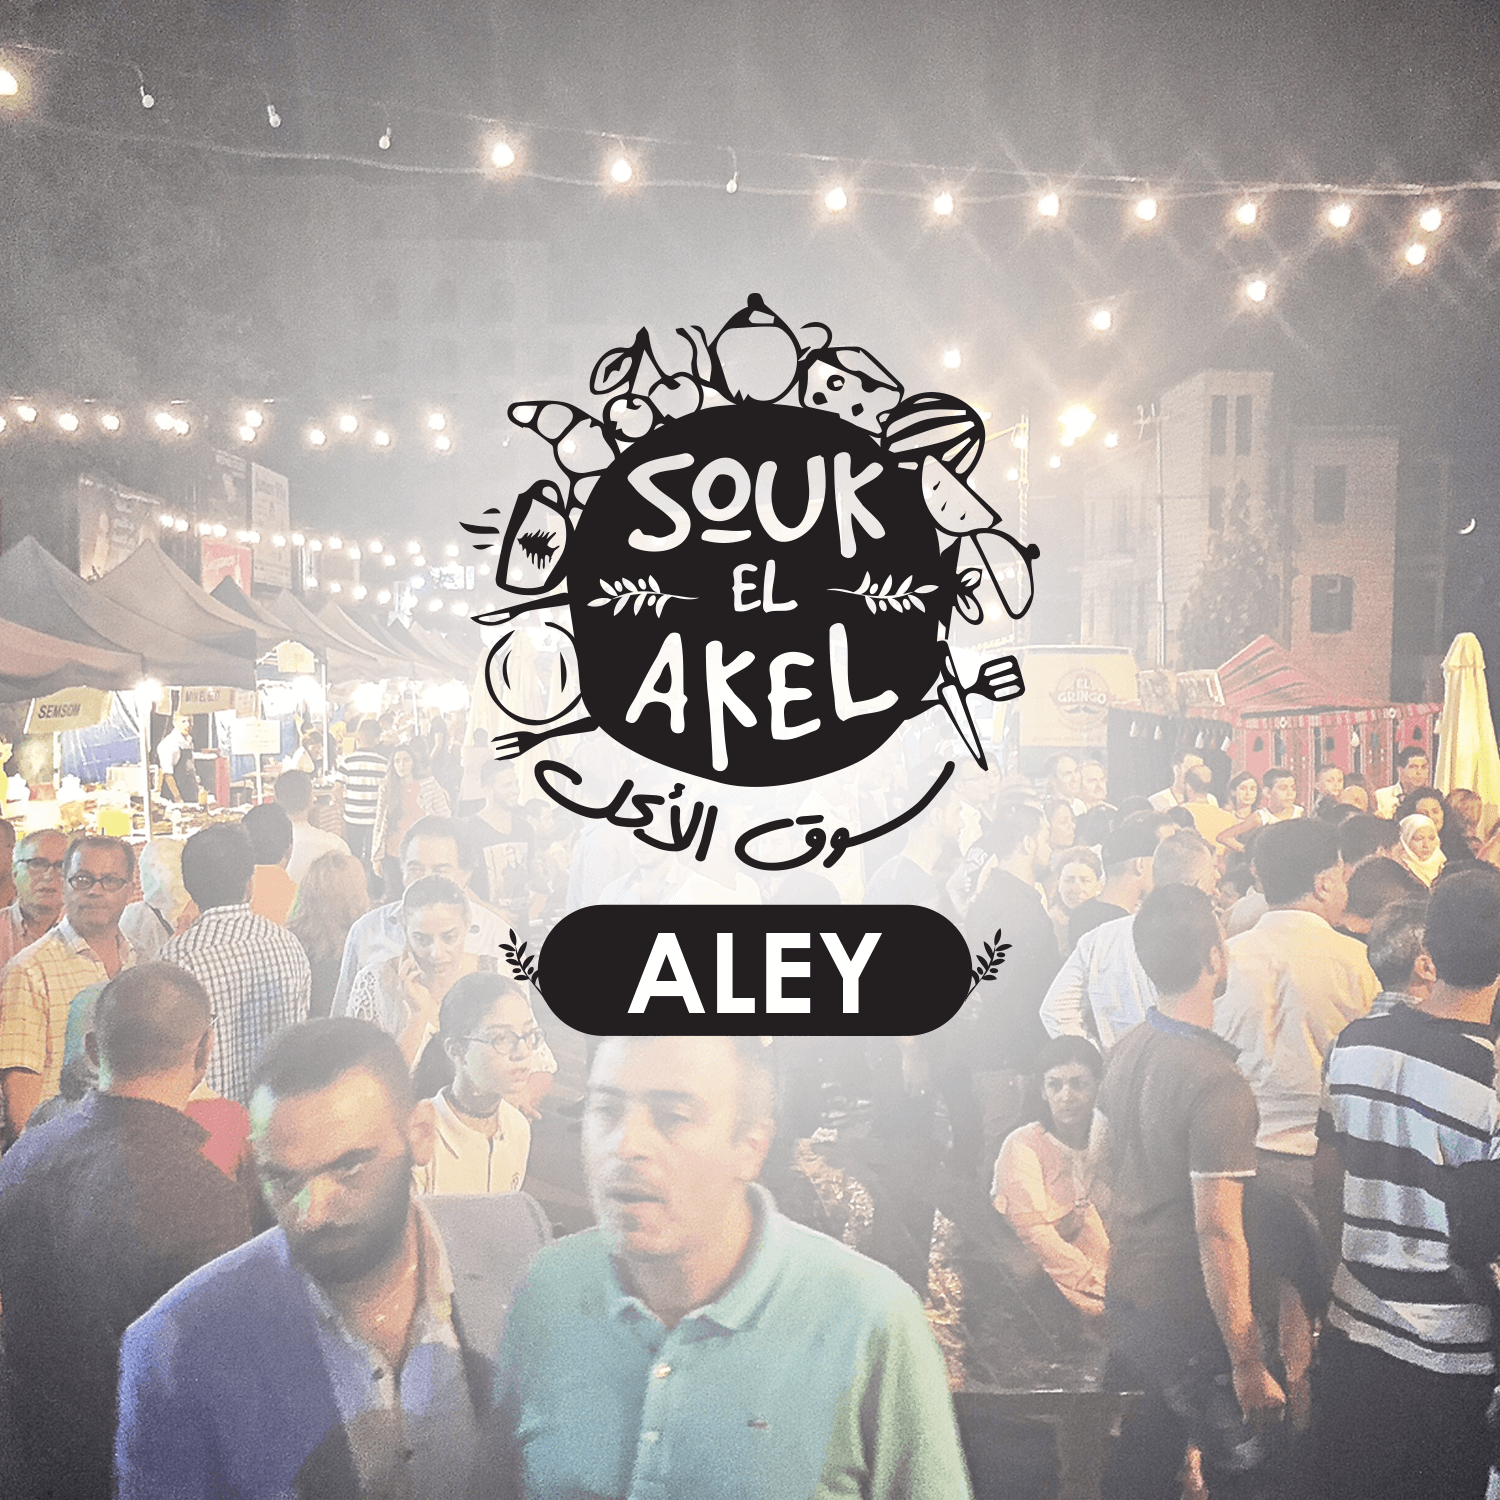 Souk-el-Akl-FB-post-aley-20160817-02